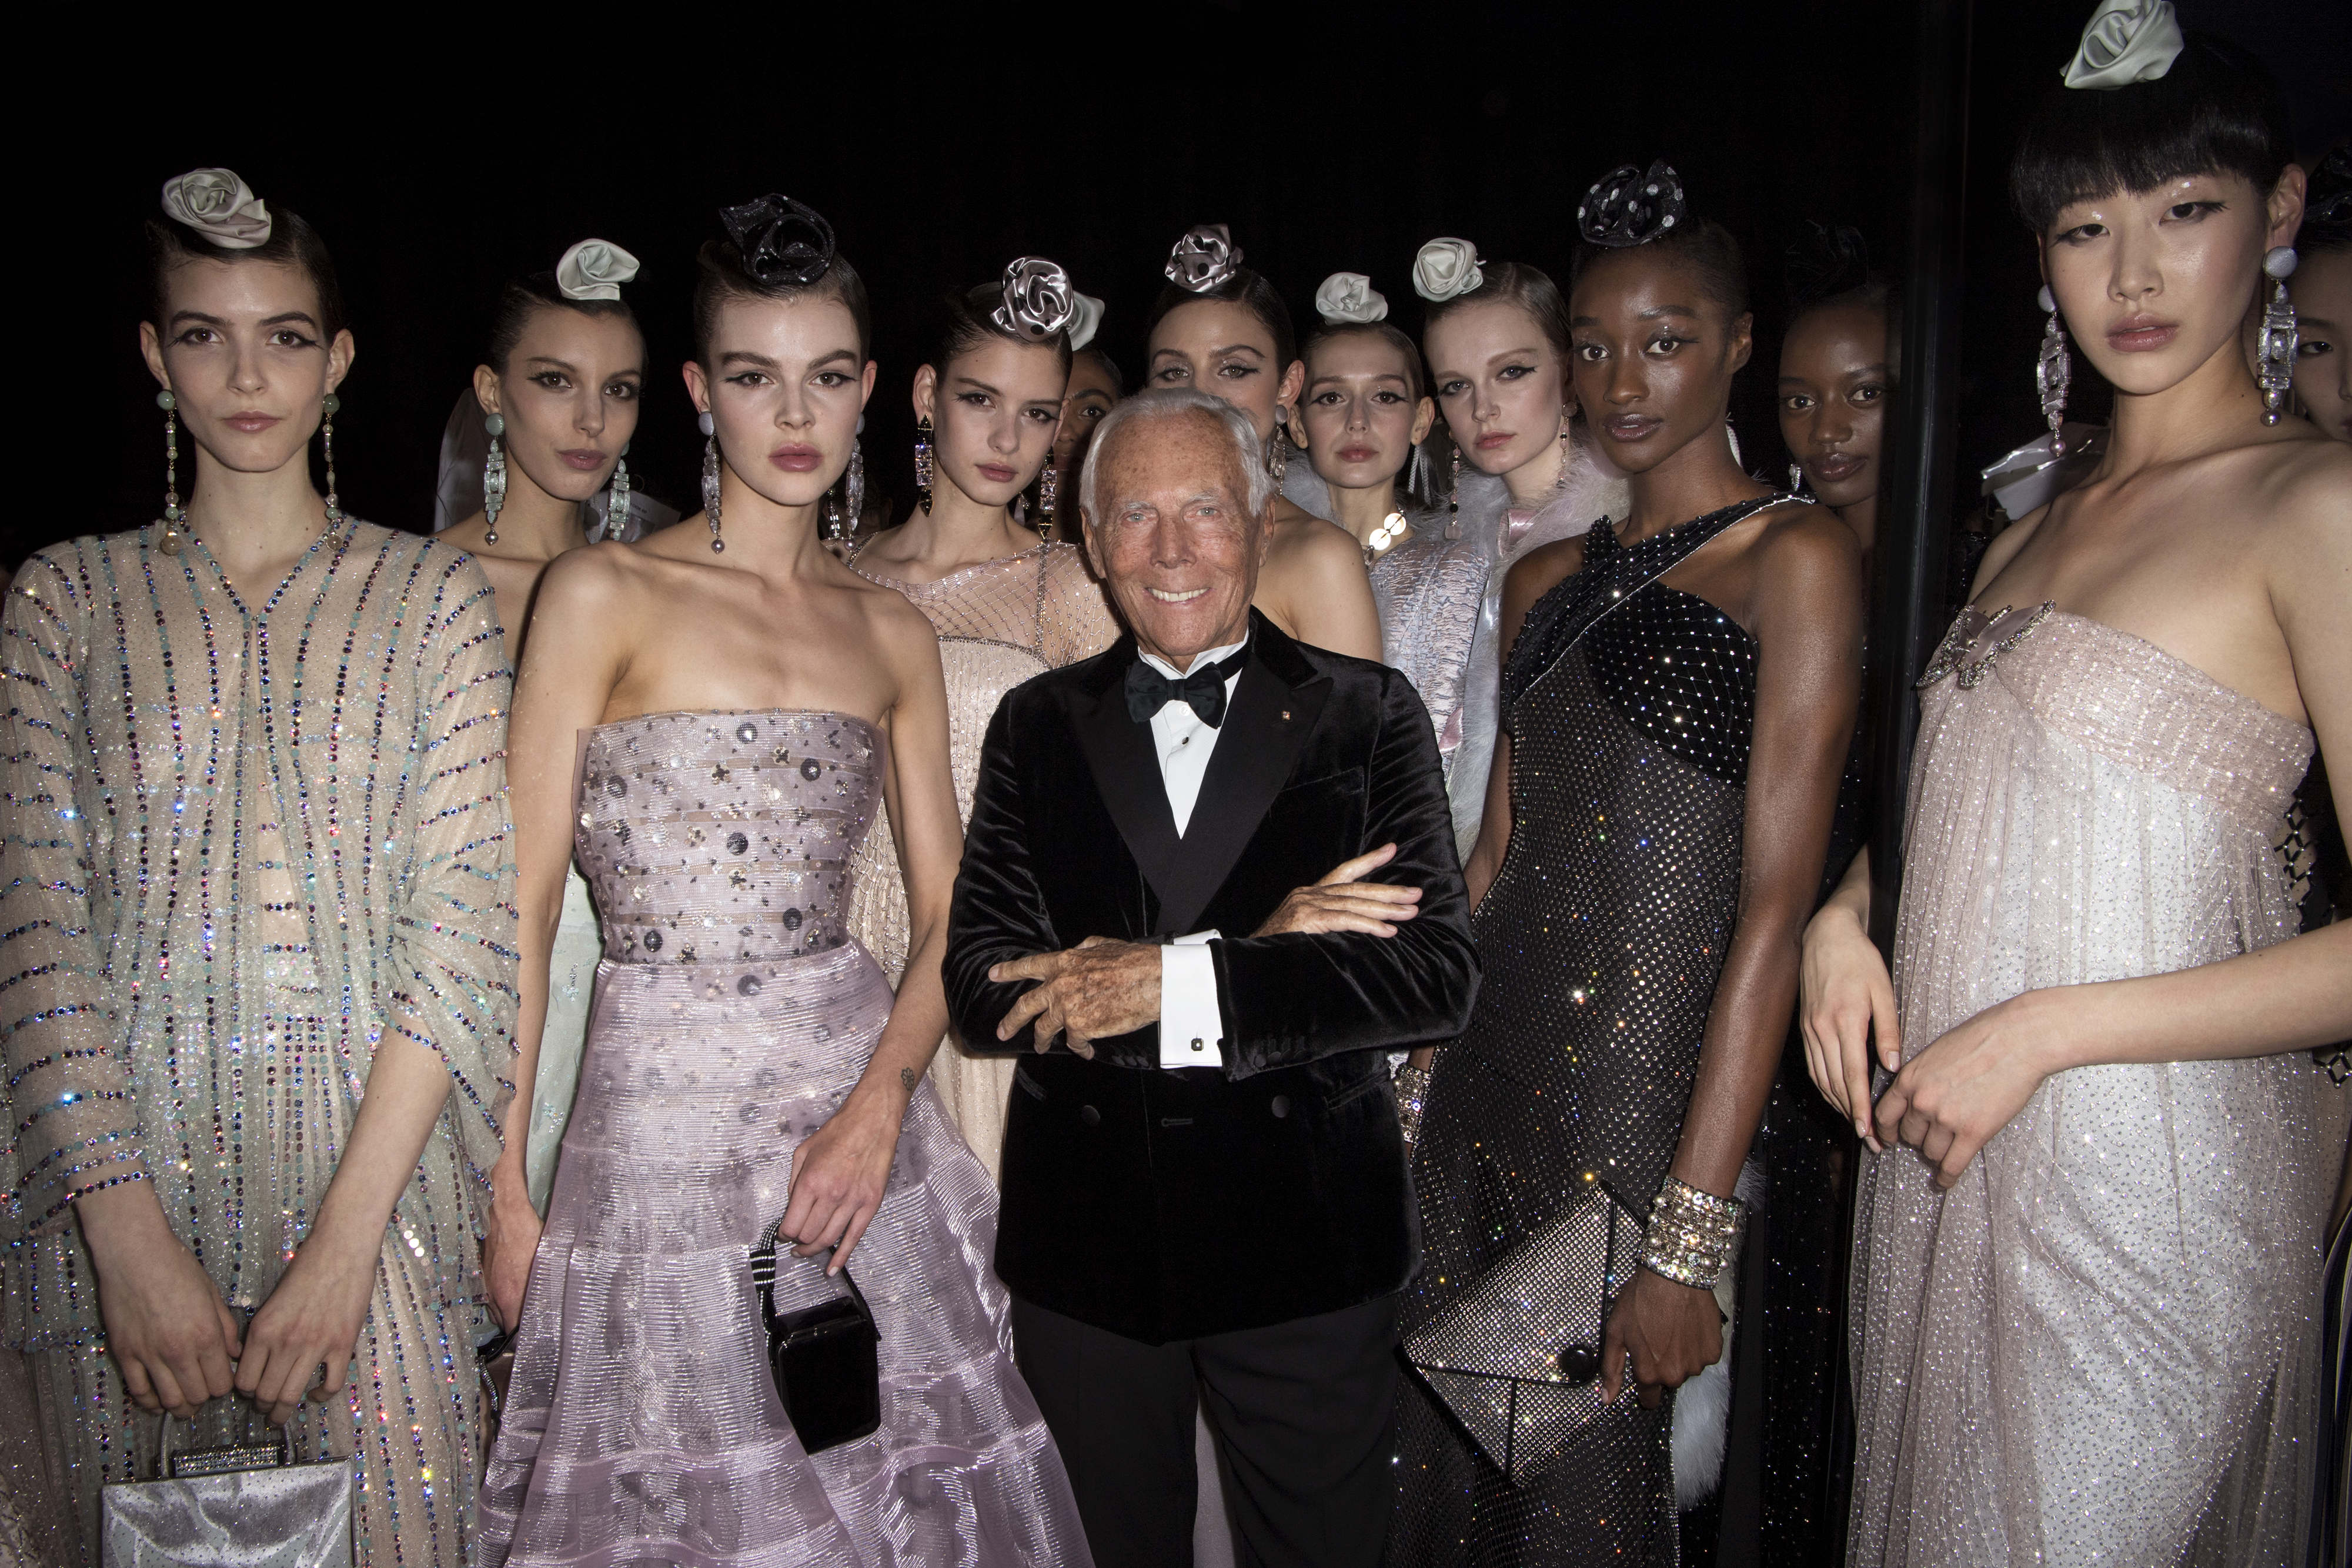 Giorgio Armani with models - photo by Stefano Guindani